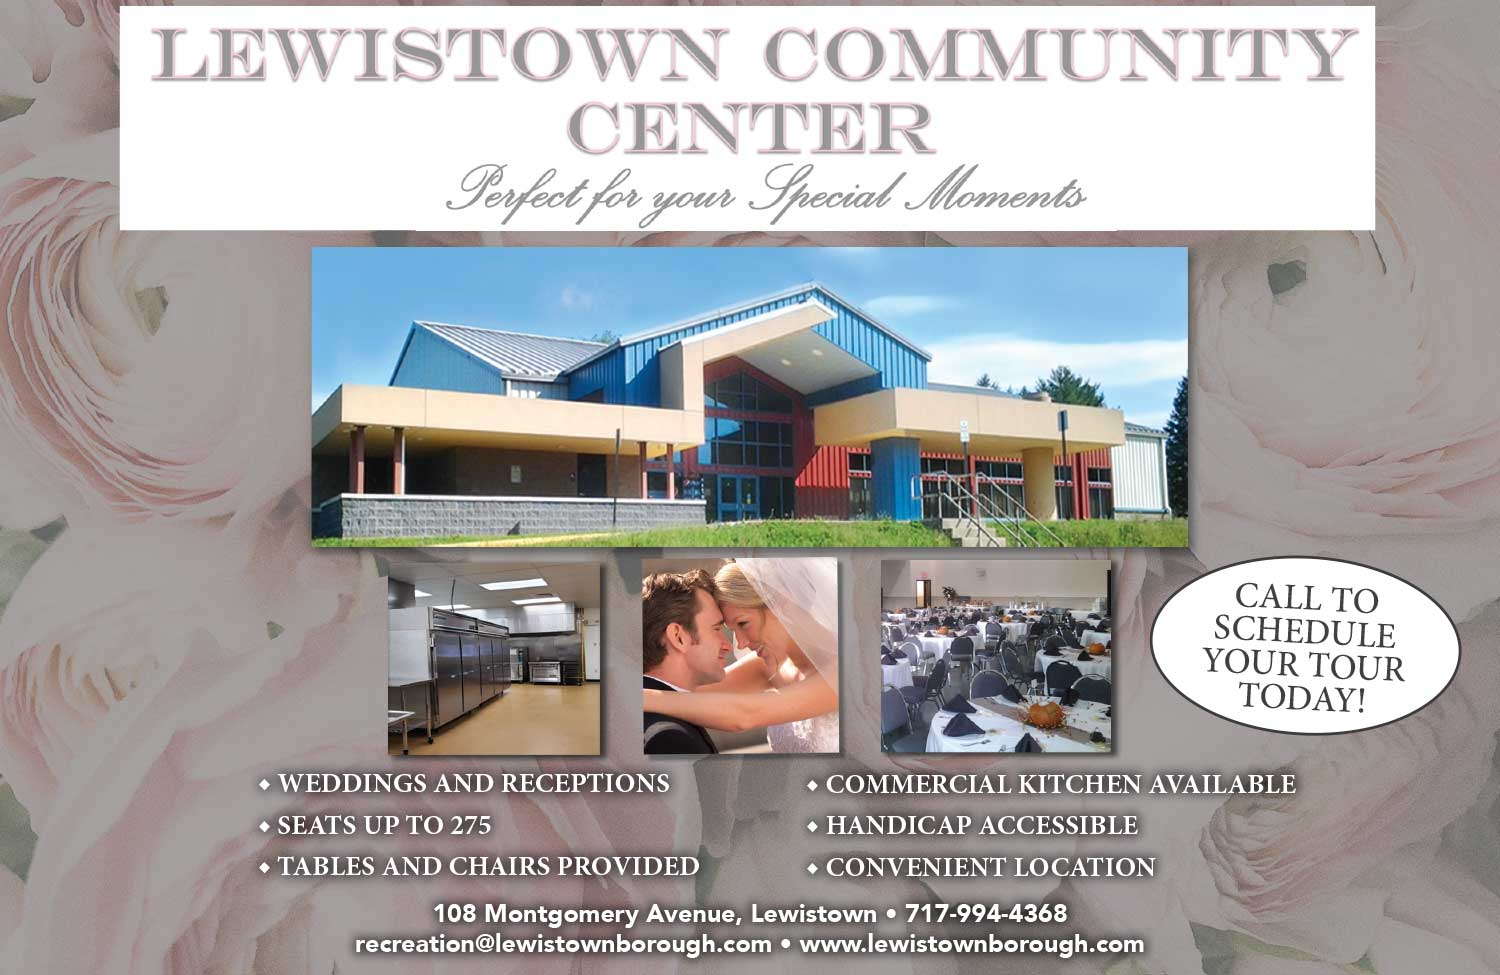 "<center>Borough of Lewistown | <b><a href=""http://lewistownborough.com"" target=""_blank"" rel=""noopener noreferrer"">CLICK HERE to view the website</a></b></center>"